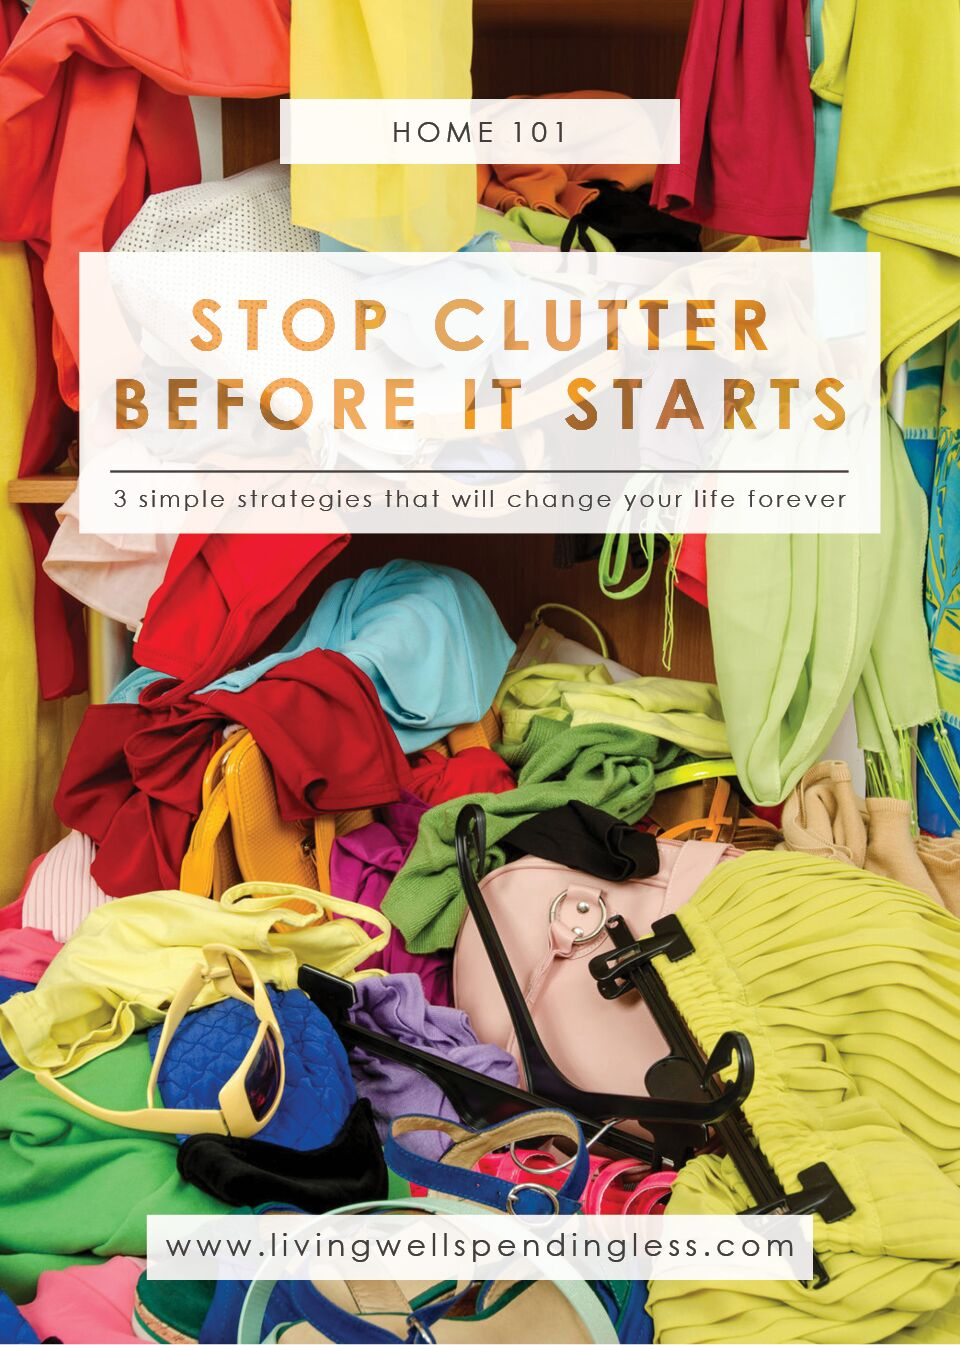 Strategies to stop clutter before it starts.